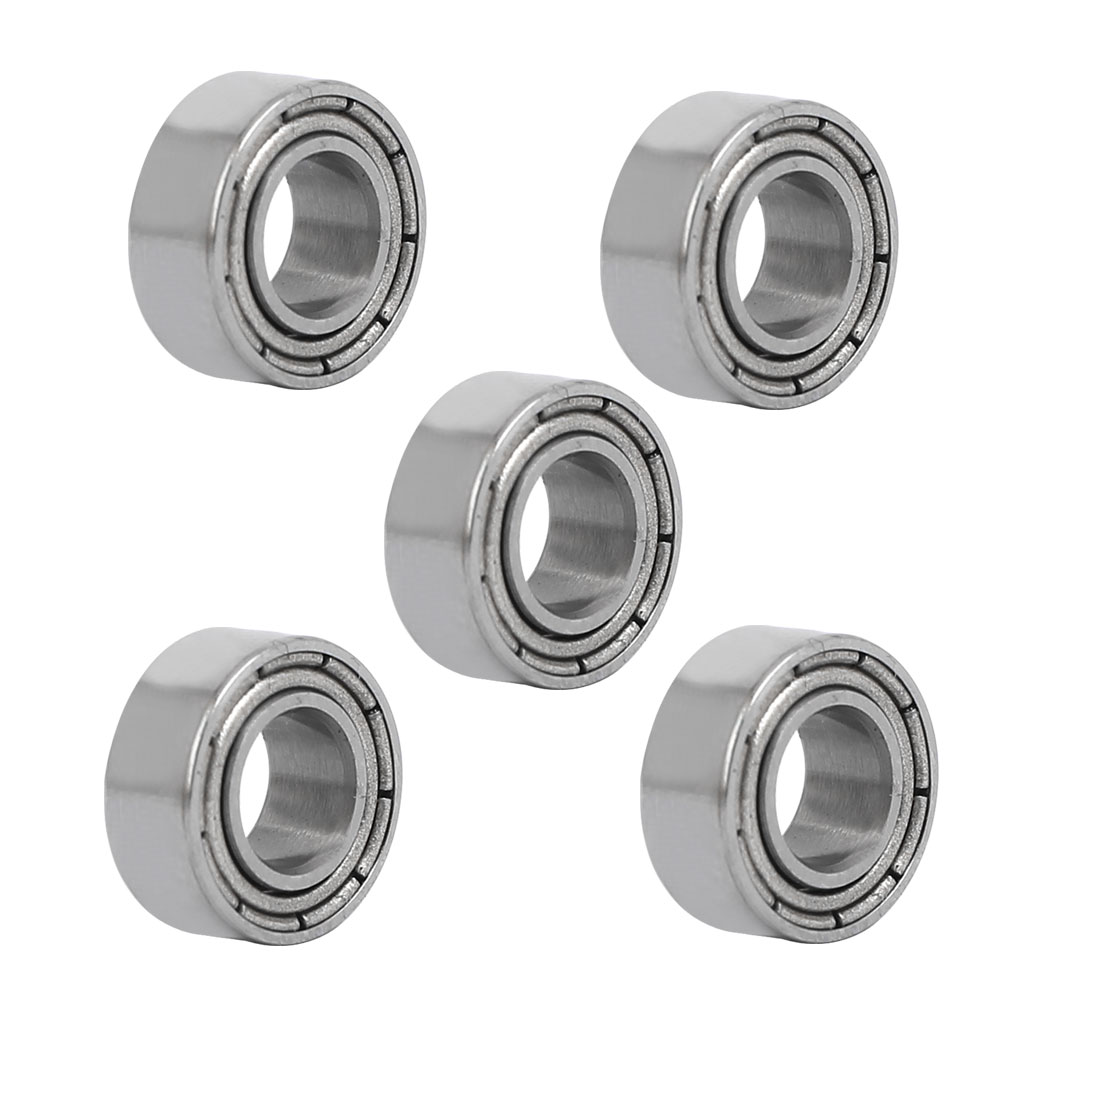 MR105ZZ 5mmx10mmx4mm Double Shielded Deep Groove Radial Ball Bearing 5pcs - image 4 of 4